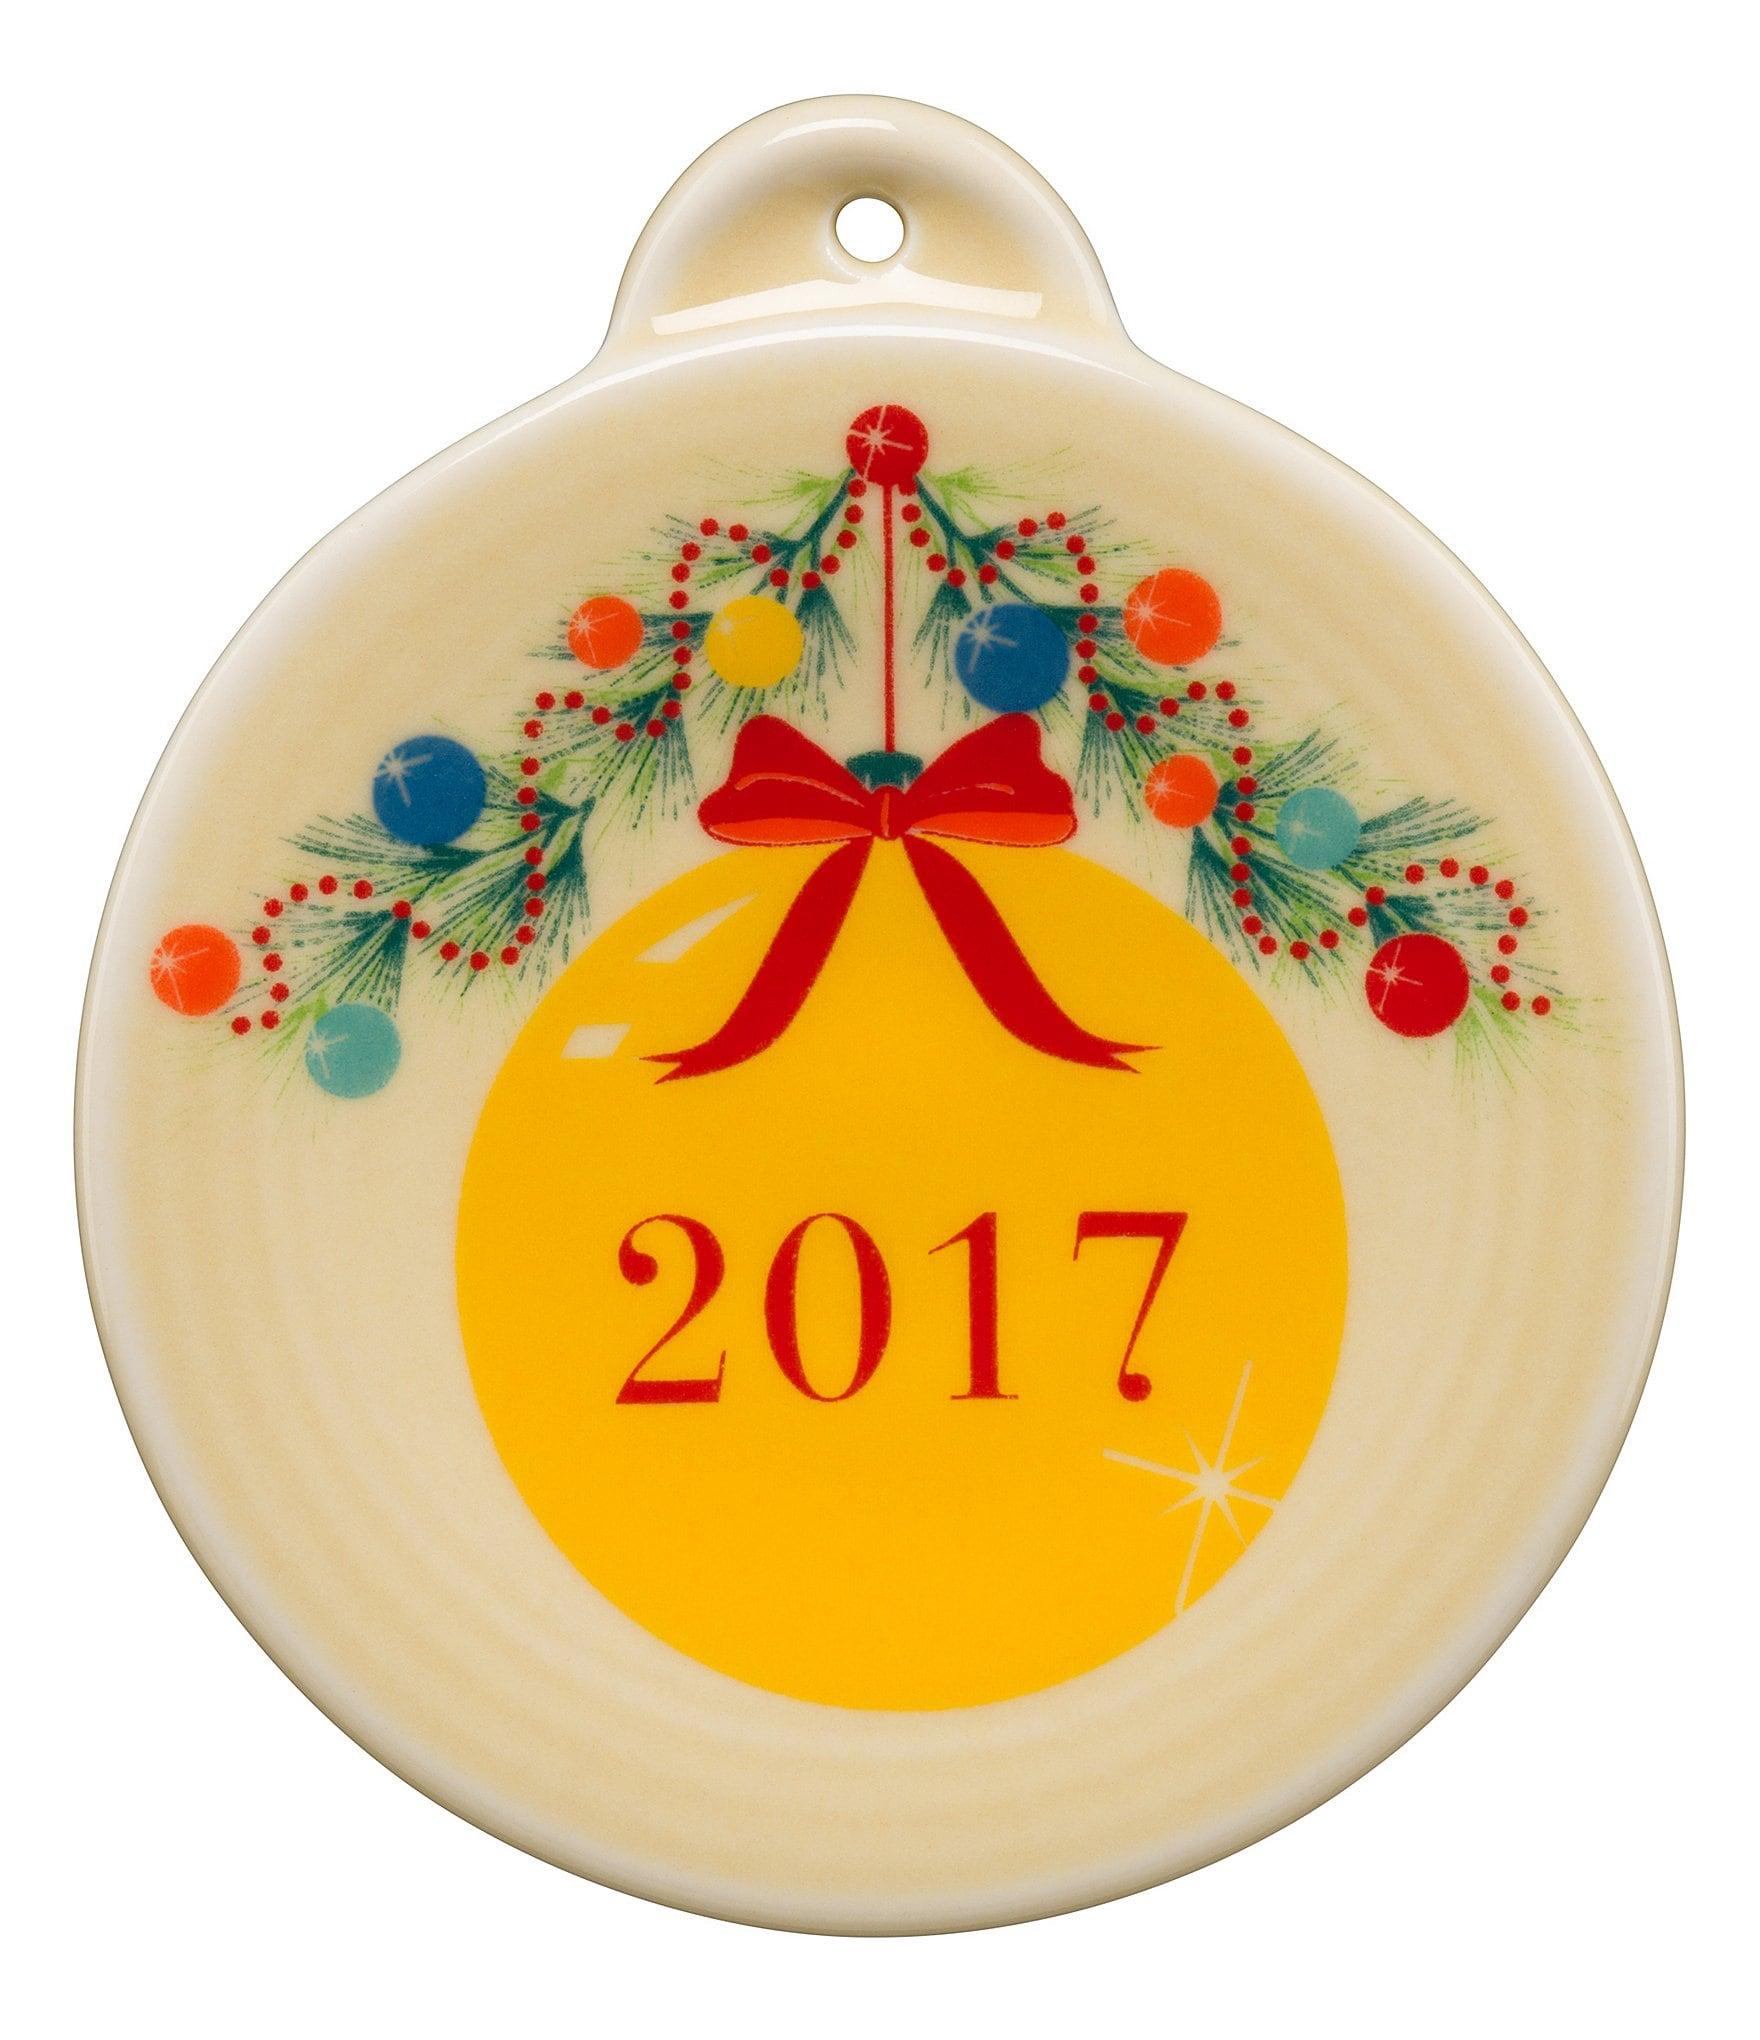 Christmas ornament black and white 187 home design 2017 - Christmas Ornament Black And White 187 Home Design 2017 19